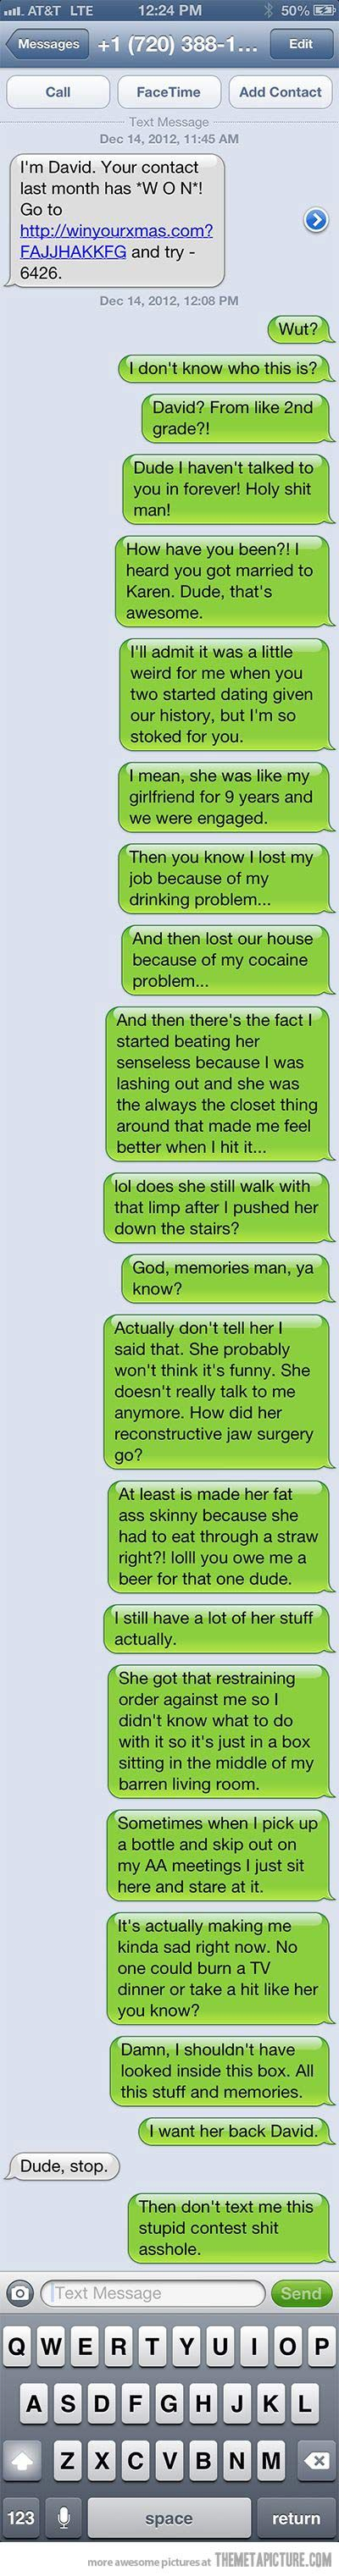 Awesome: Texts, Giggle, Funny Stuff, Funnies, So Funny